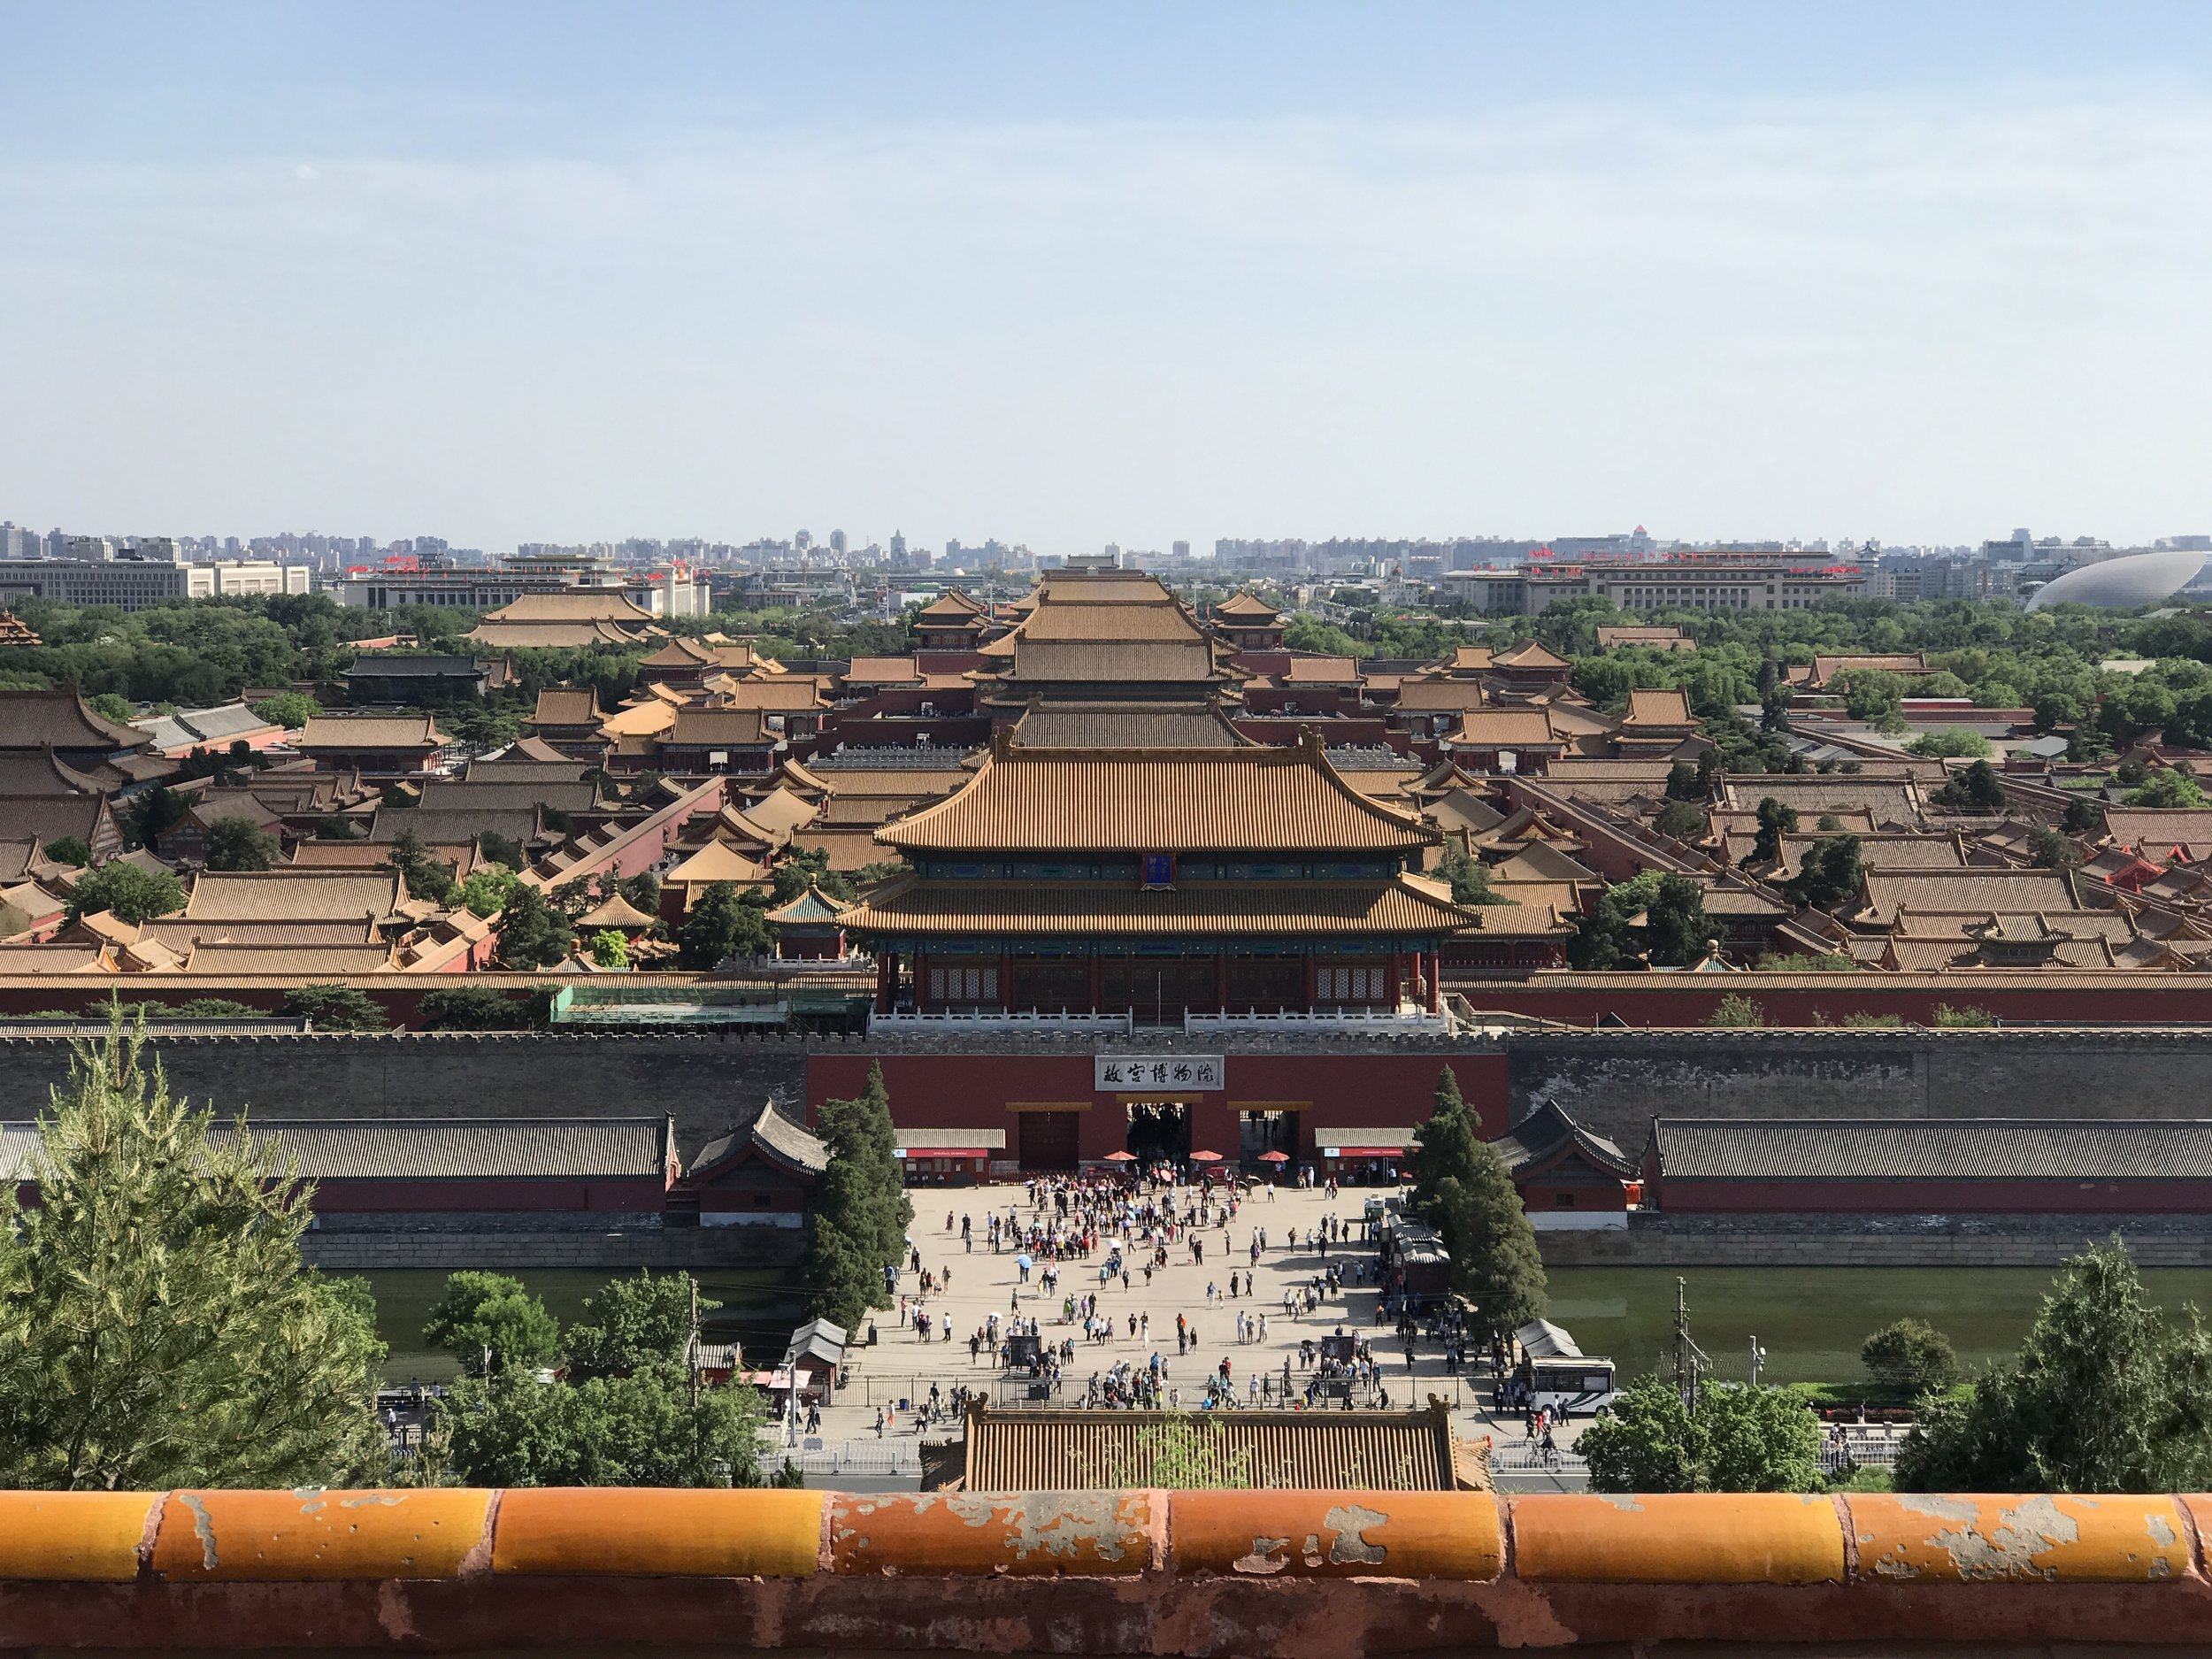 Social Media Cleanse - Fun Facts and Travel Stories About Beijing